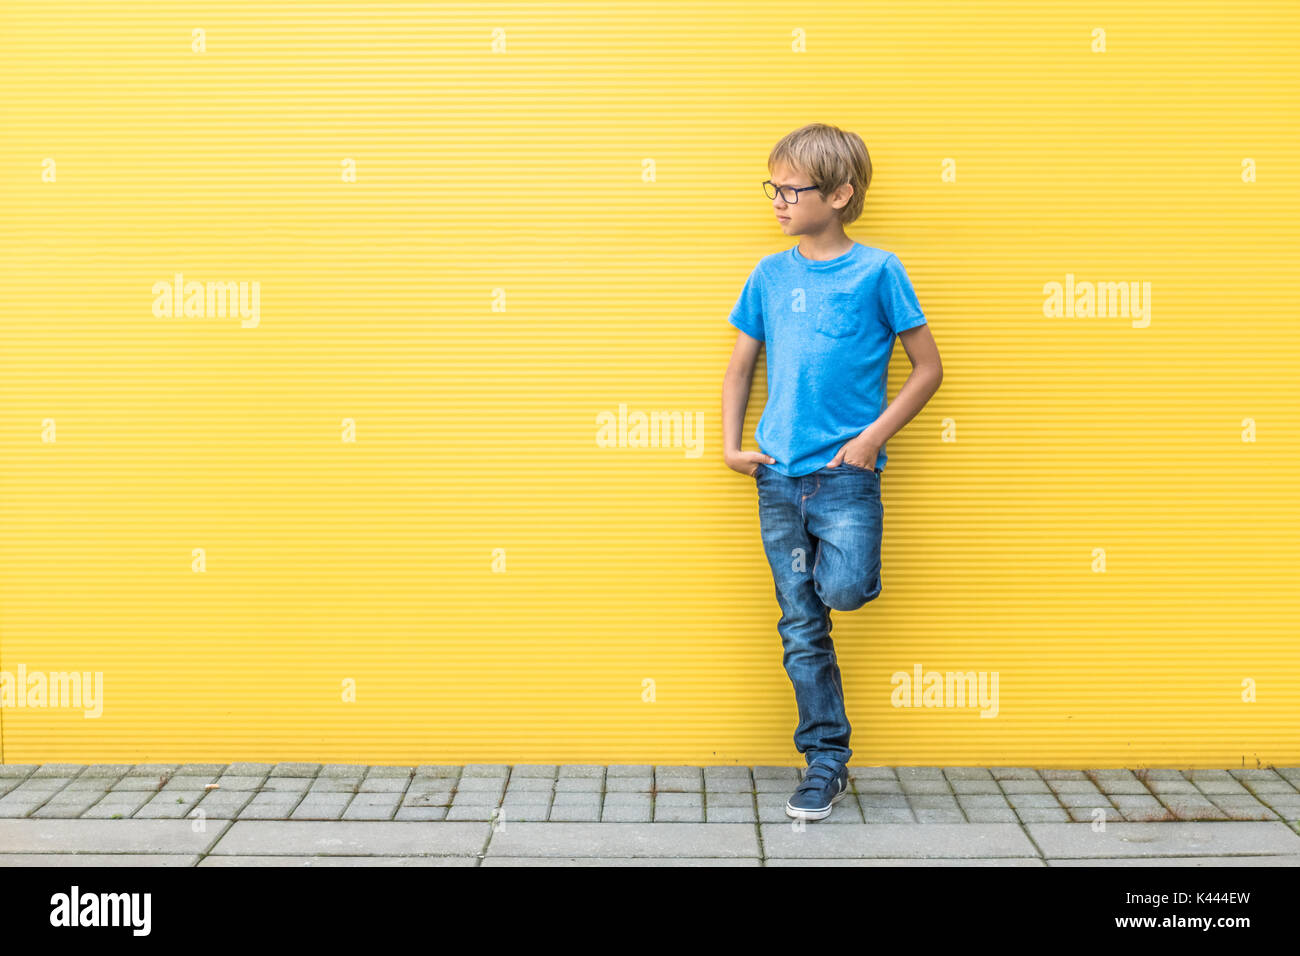 Boy with glasses standing near yellow wall oudoors - Stock Image